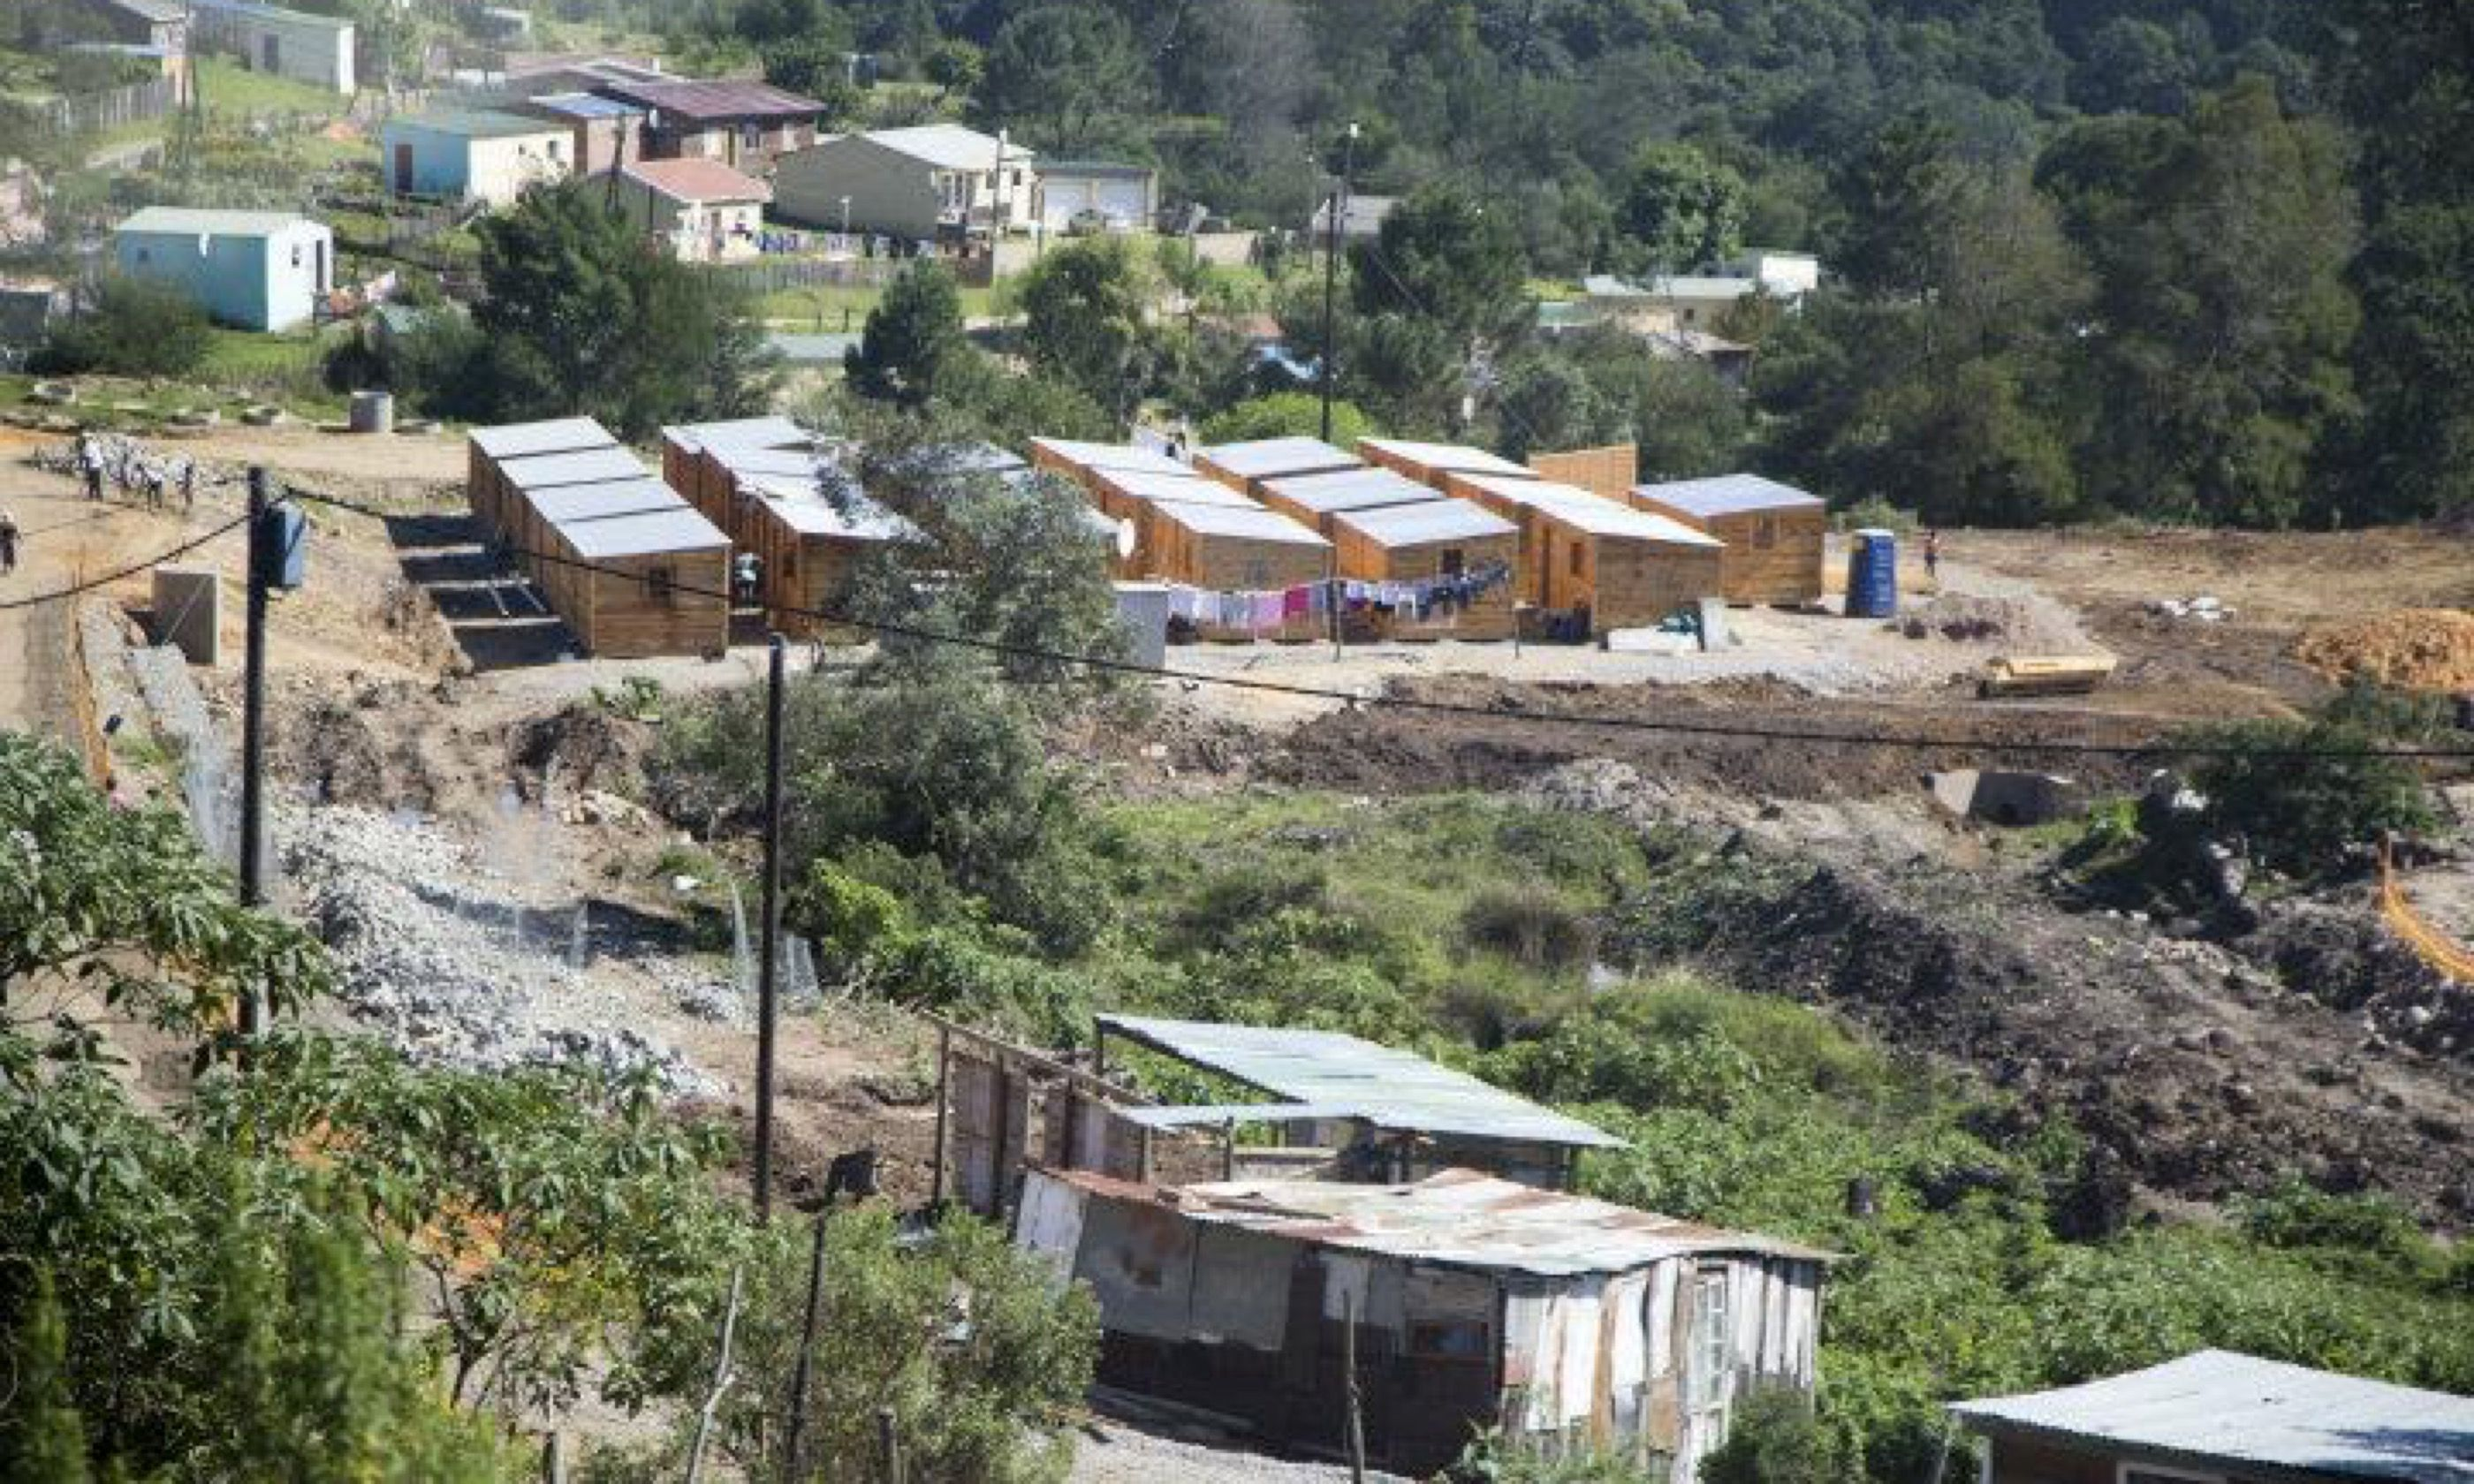 New houses in Knysna township (M.Cagol)